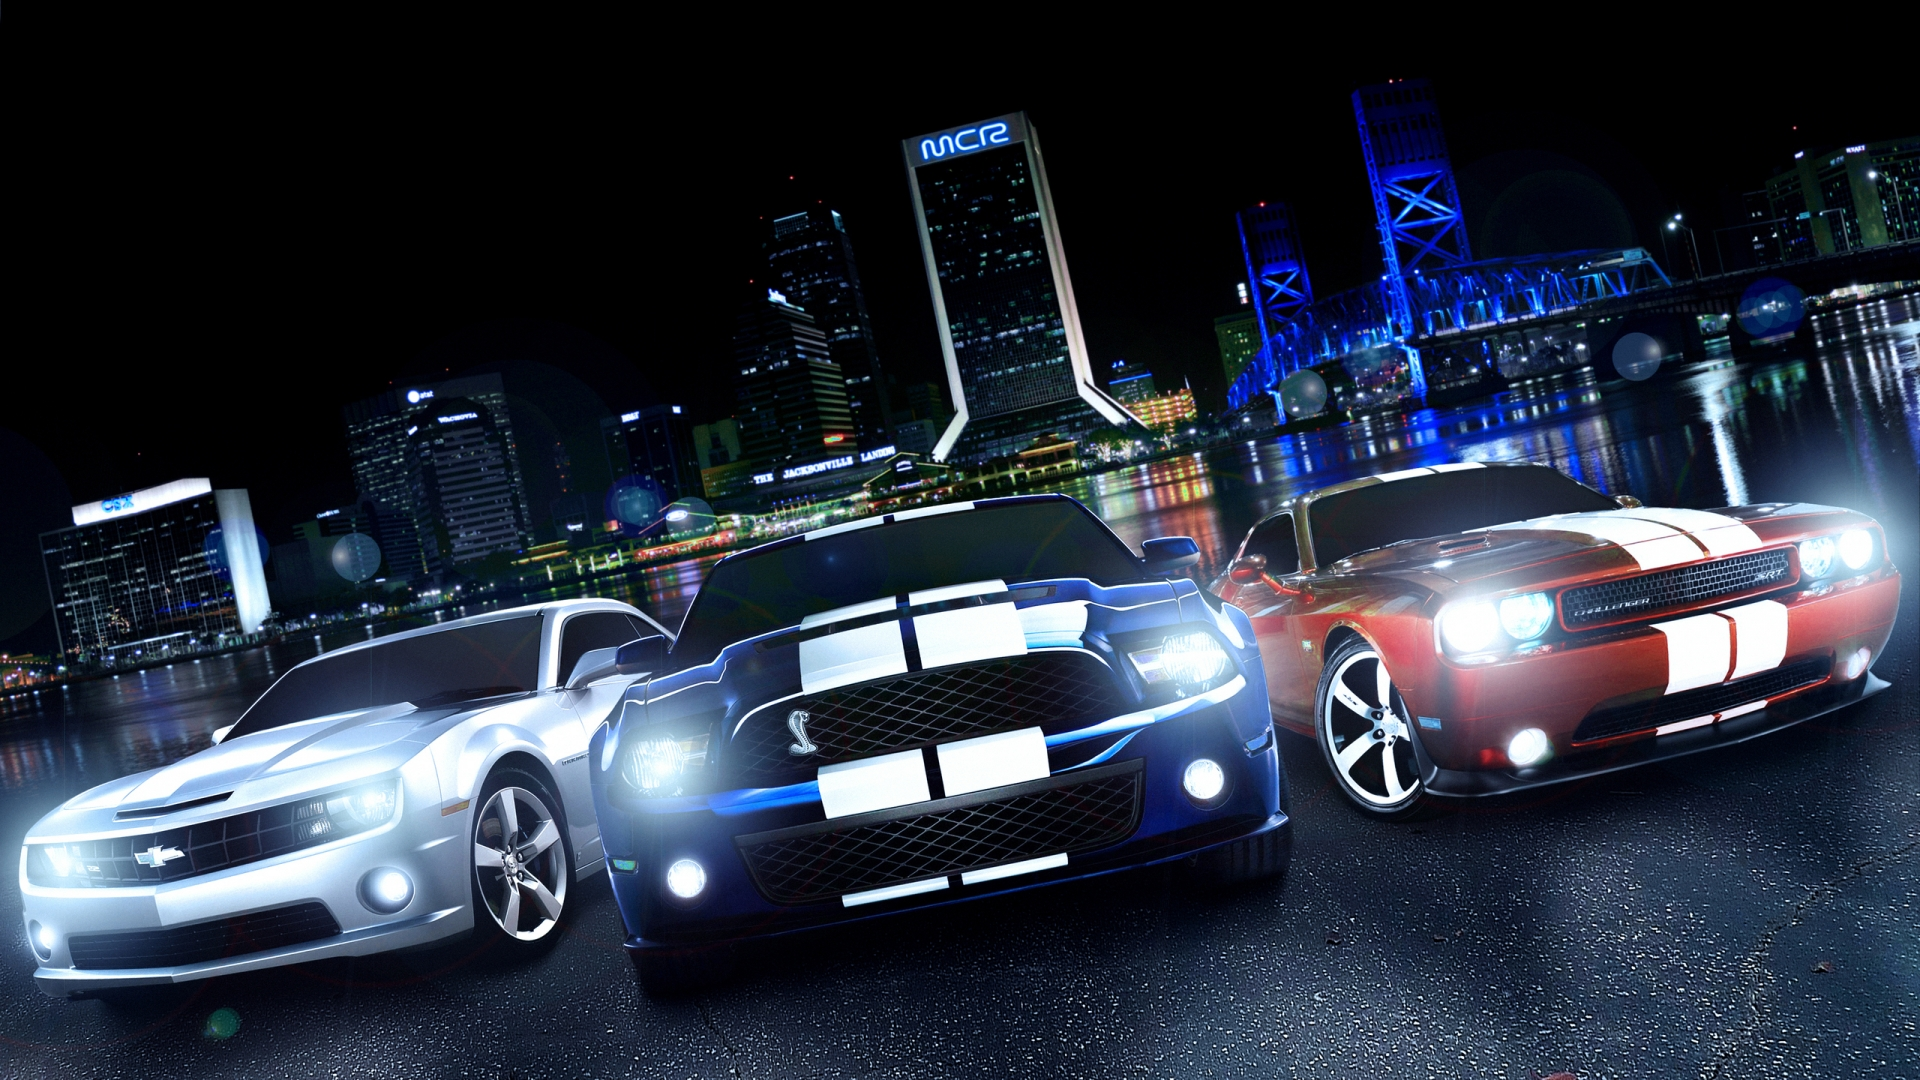 Cars Wallpapers: Ford Wallpaper Backgrounds In HD For Free Download